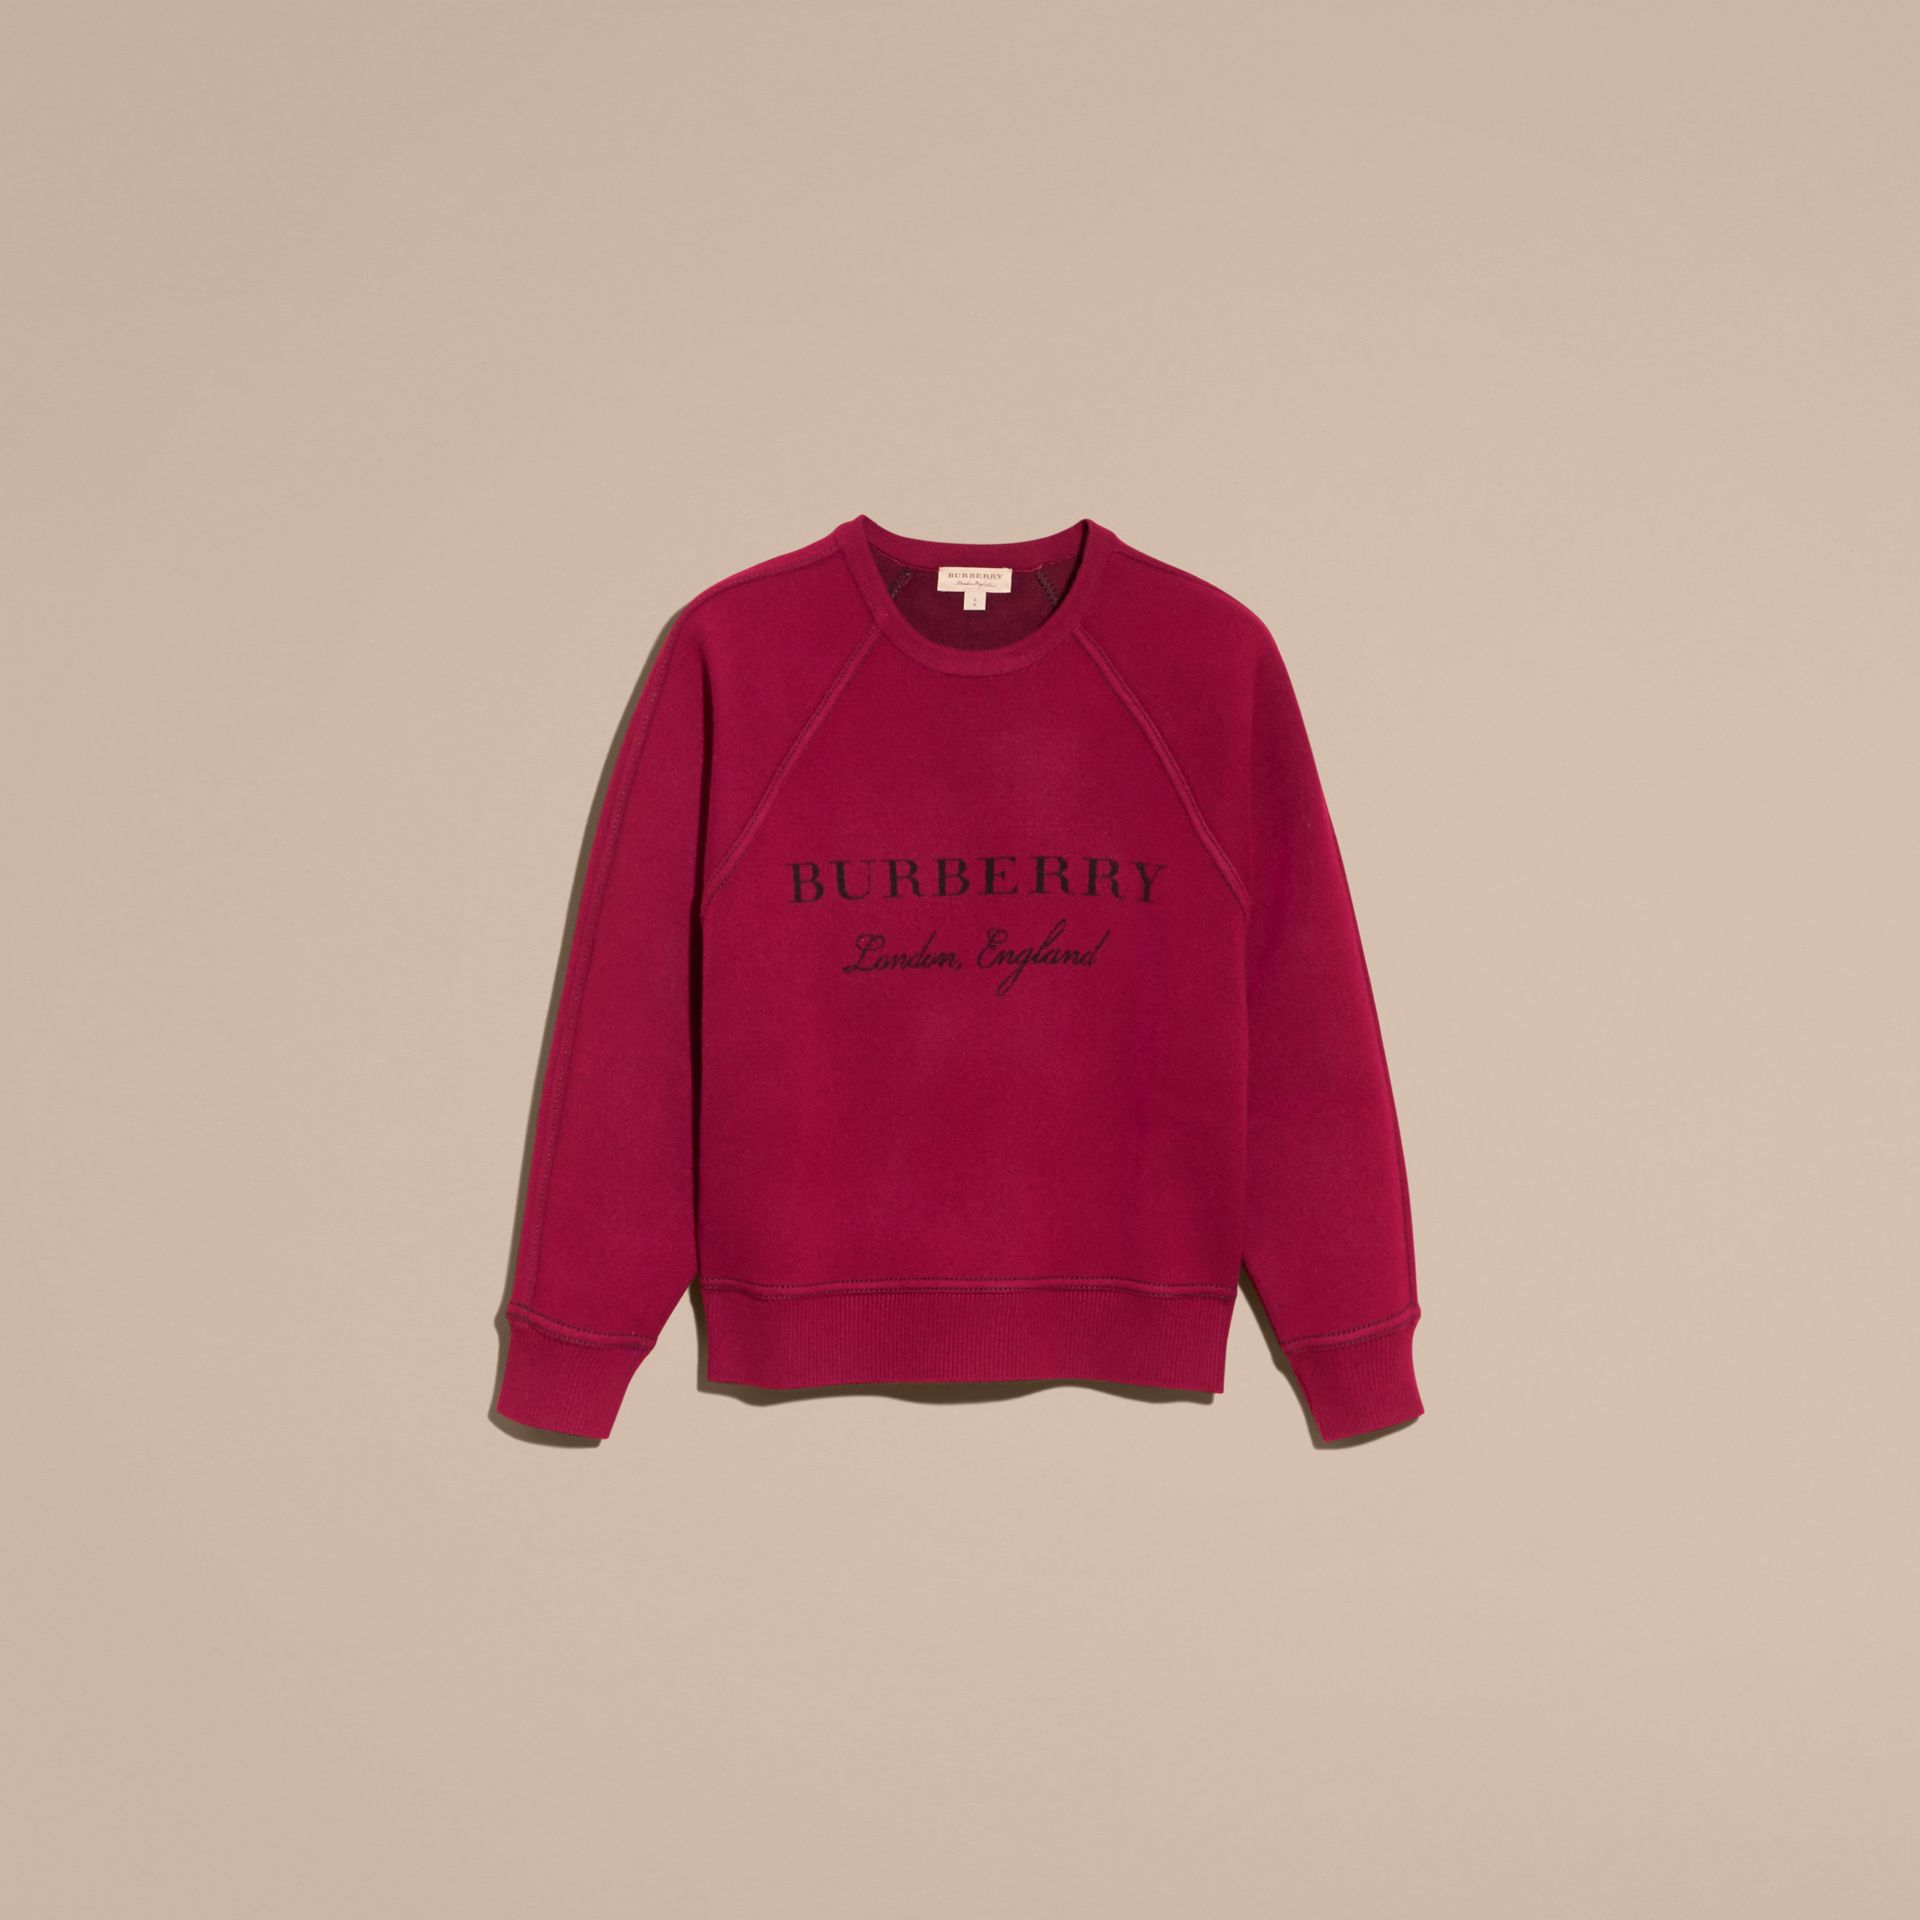 Topstitch Detail Wool Cashmere Blend Sweater in Burgundy - Women | Burberry Singapore - gallery image 4